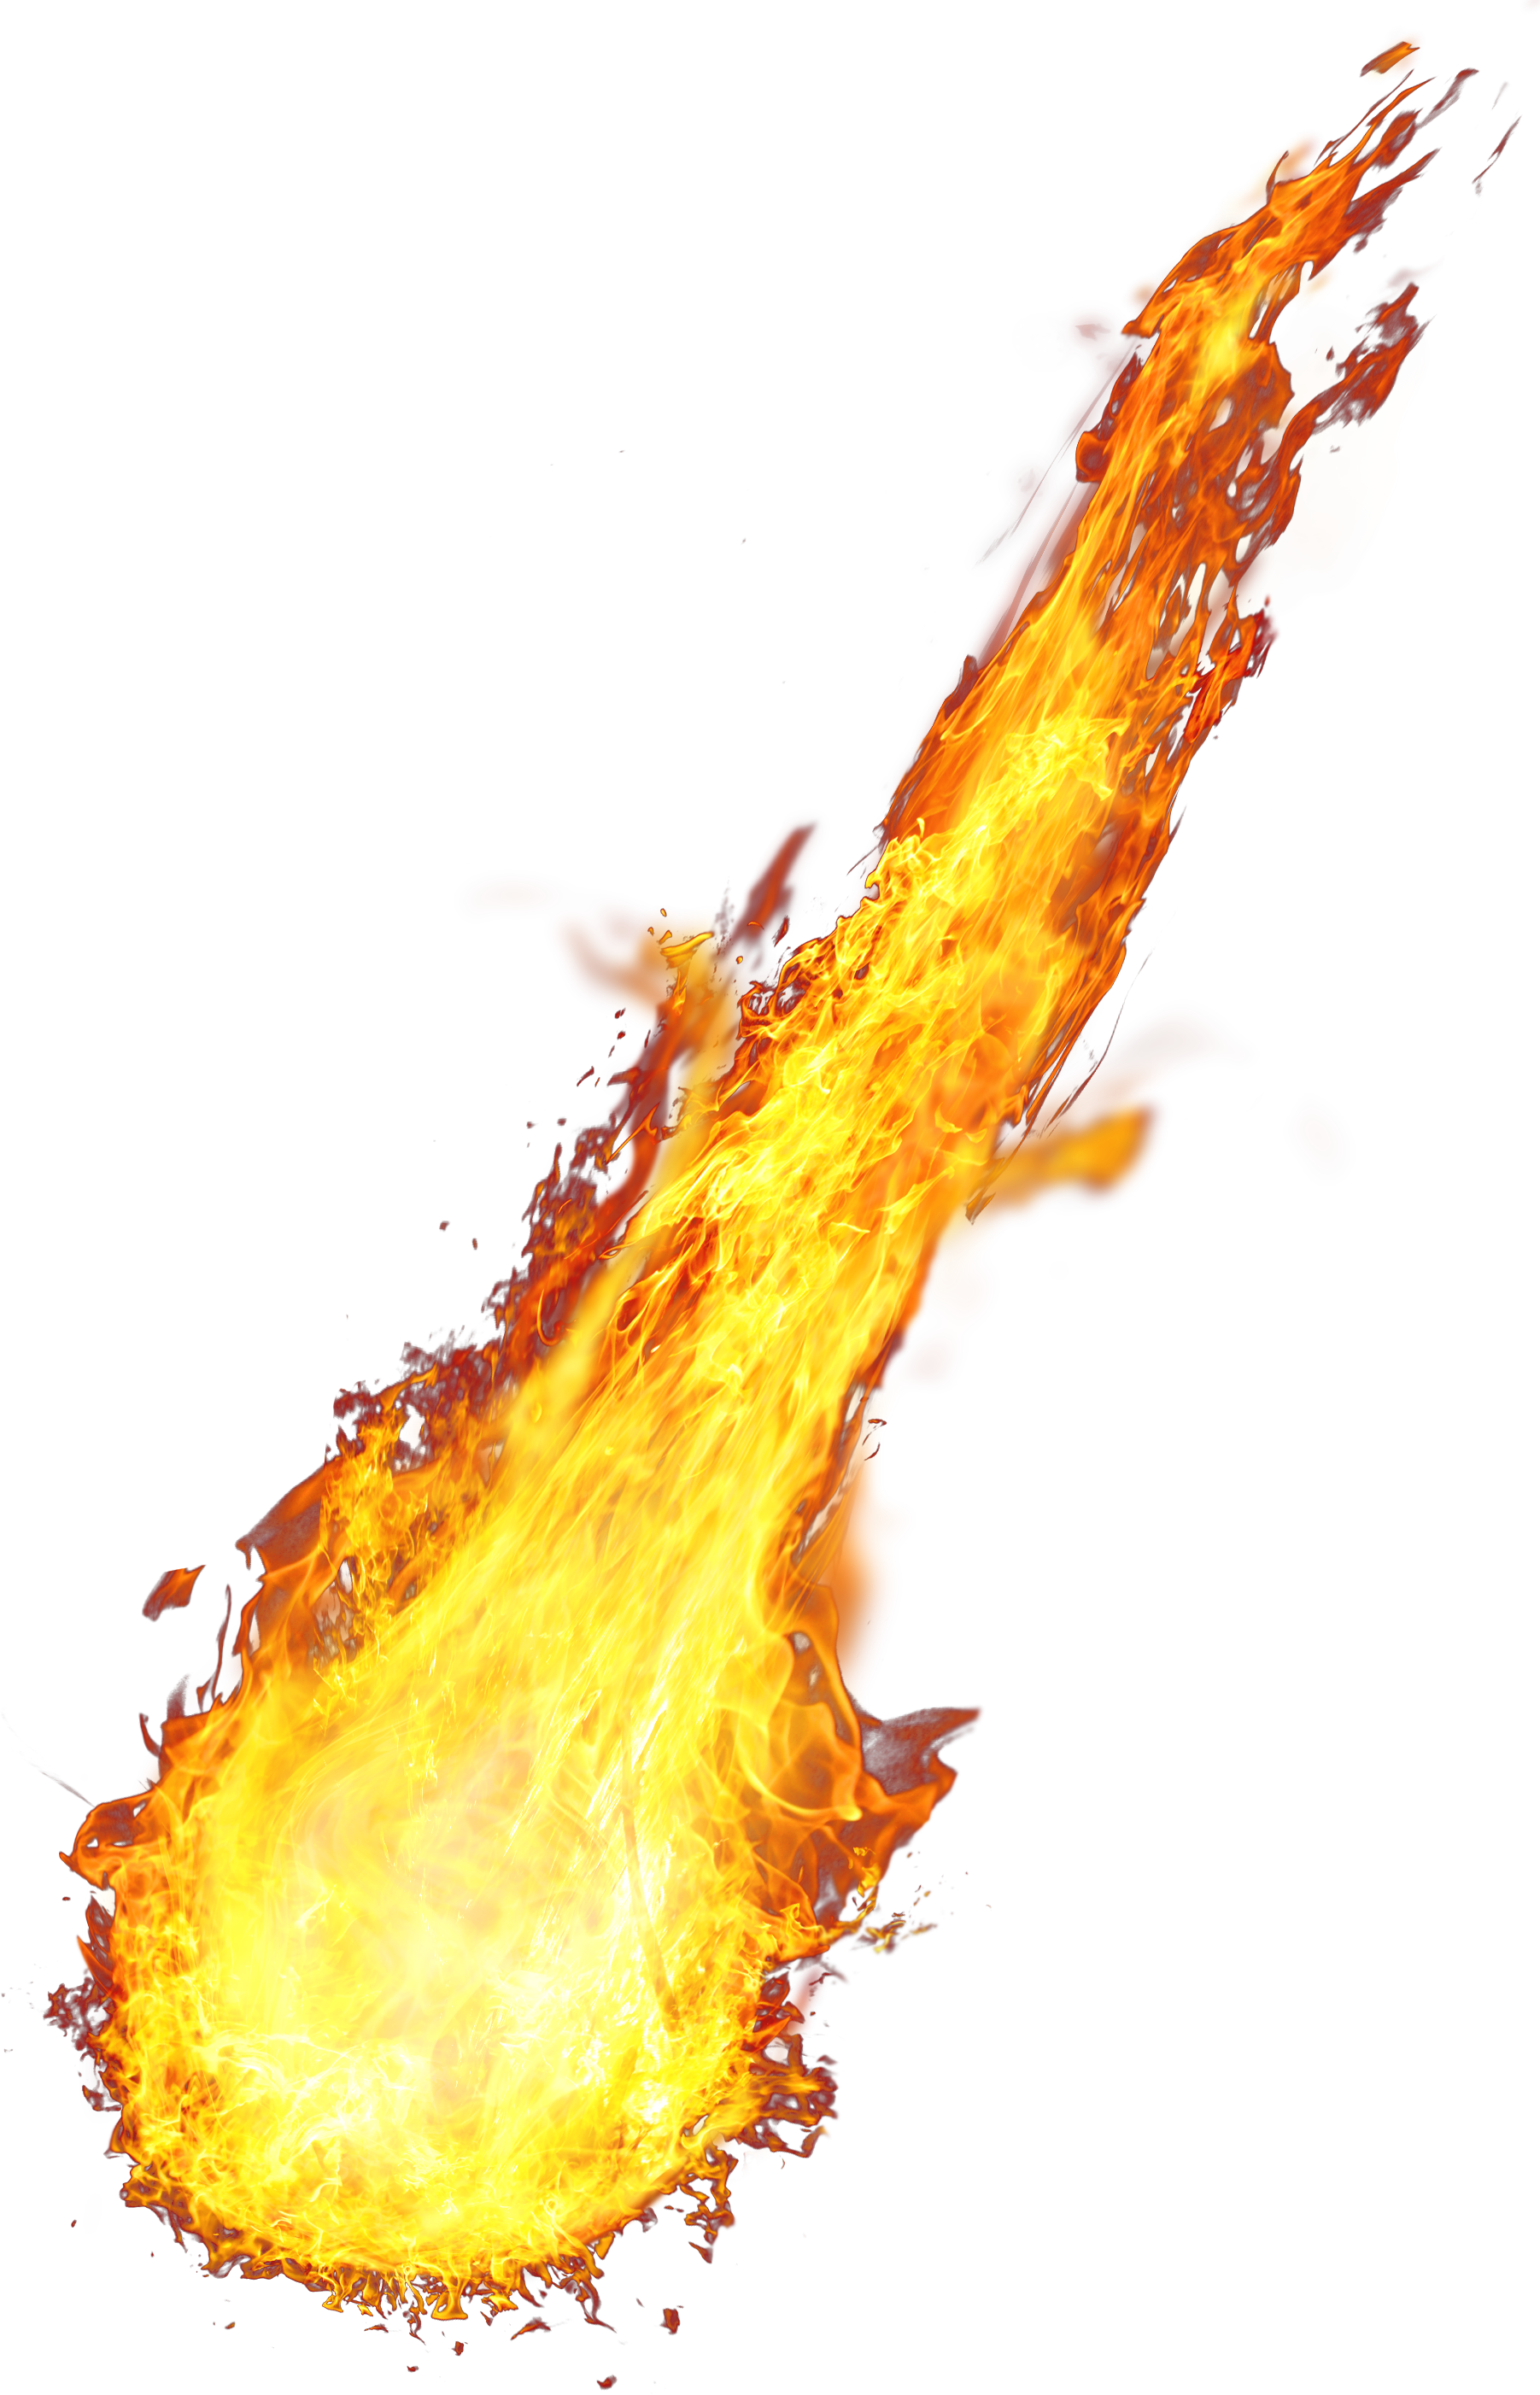 Download Fire Png High-quality image #670